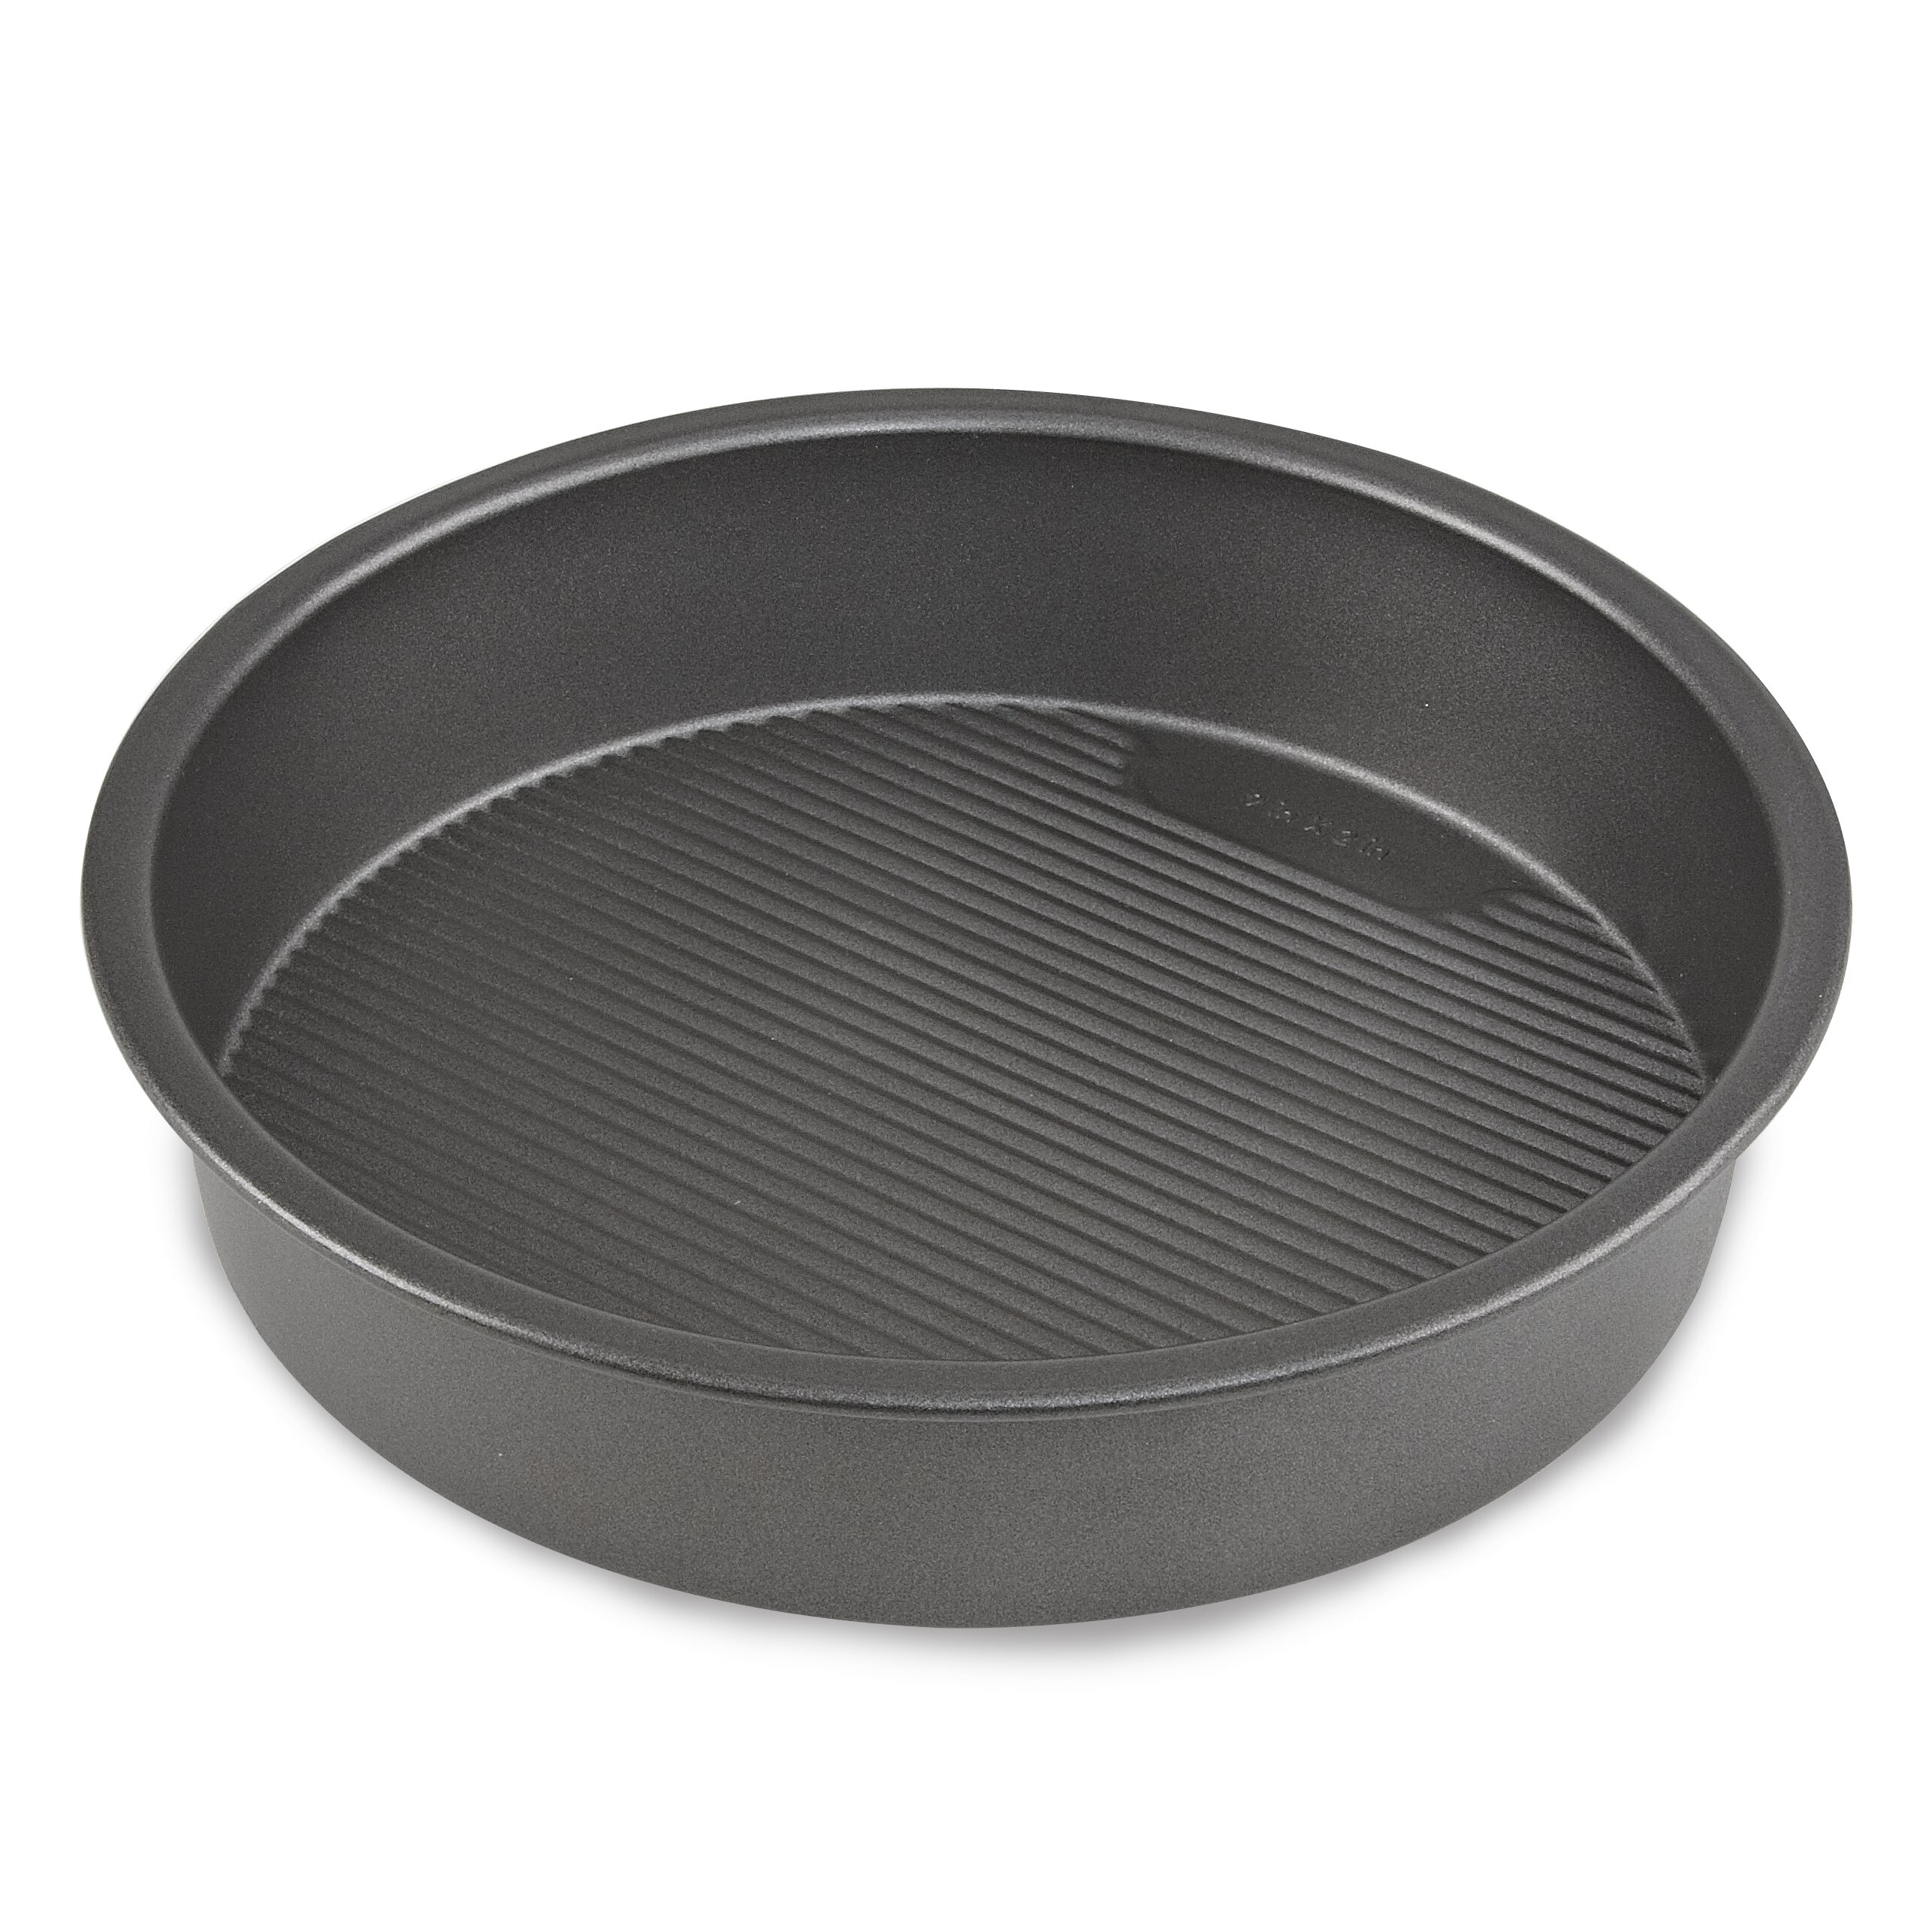 Good Cook Sweet Creations Non Stick Bake Perfect Round